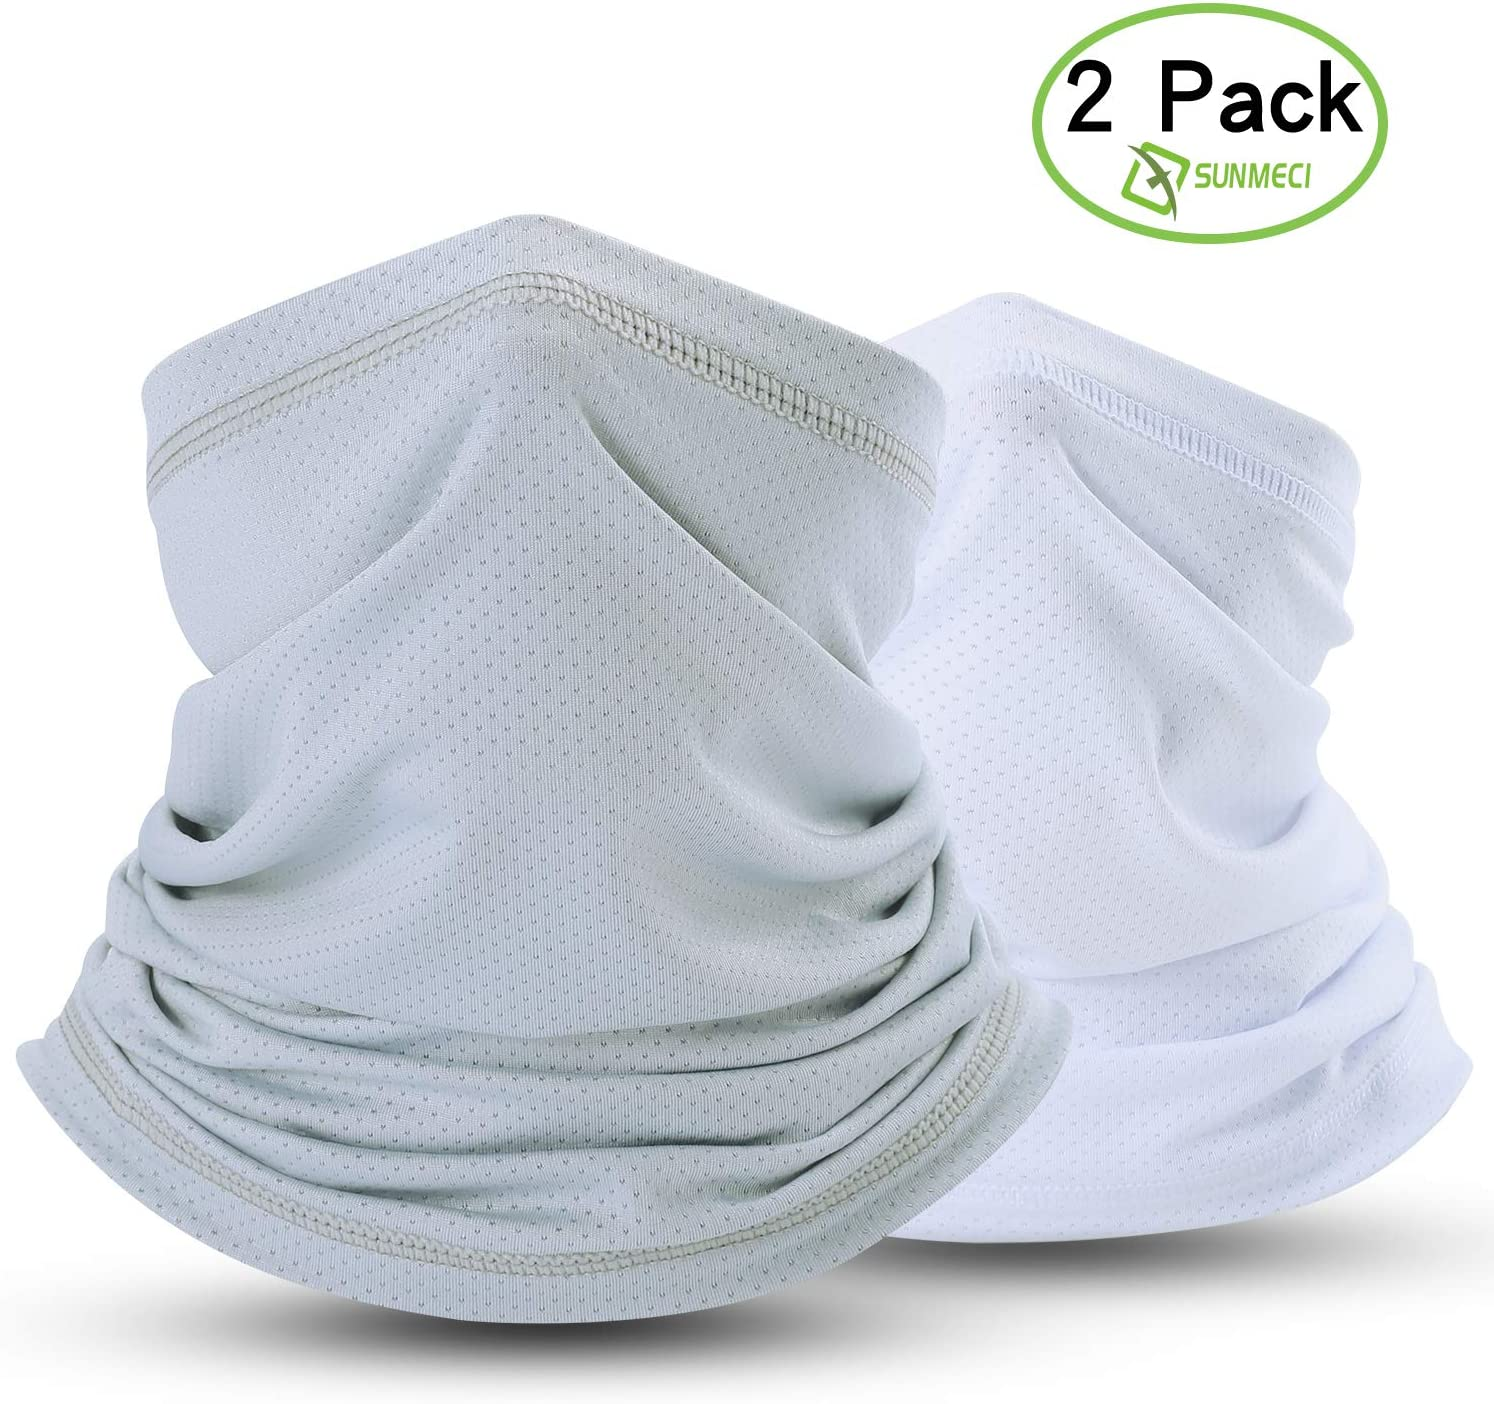 Grey+White Summer Face Cover Breathable Sun Protection Neck Gaiter for Fishing Hiking Camping Outdoors Versatile Headwrap